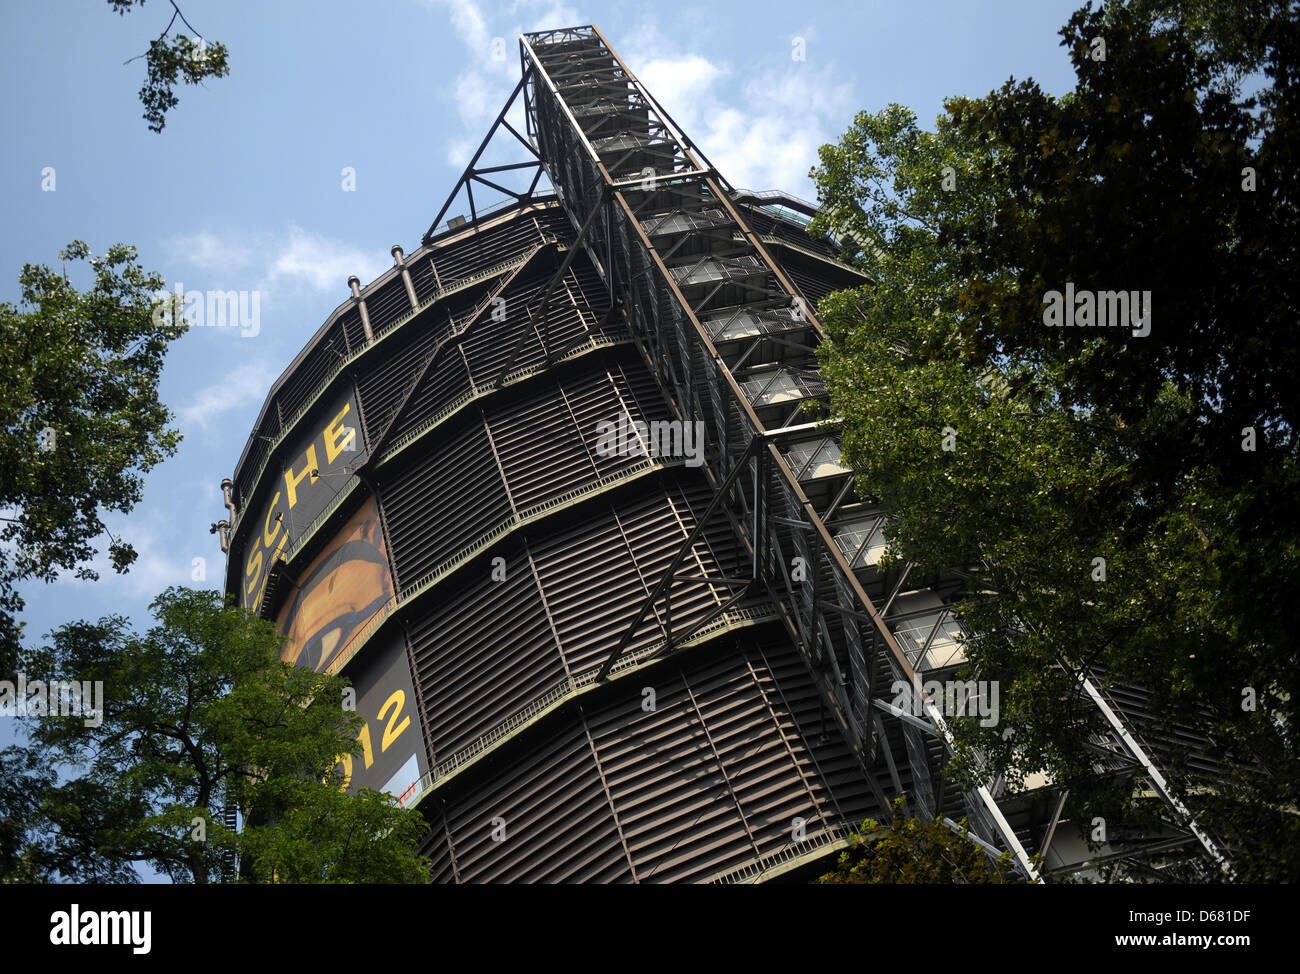 FILE - A file photo dated 14 June 2012 shows the Gasometer in Oberhausen, Germany. The Oberhausen gasometer, an Stock Photo